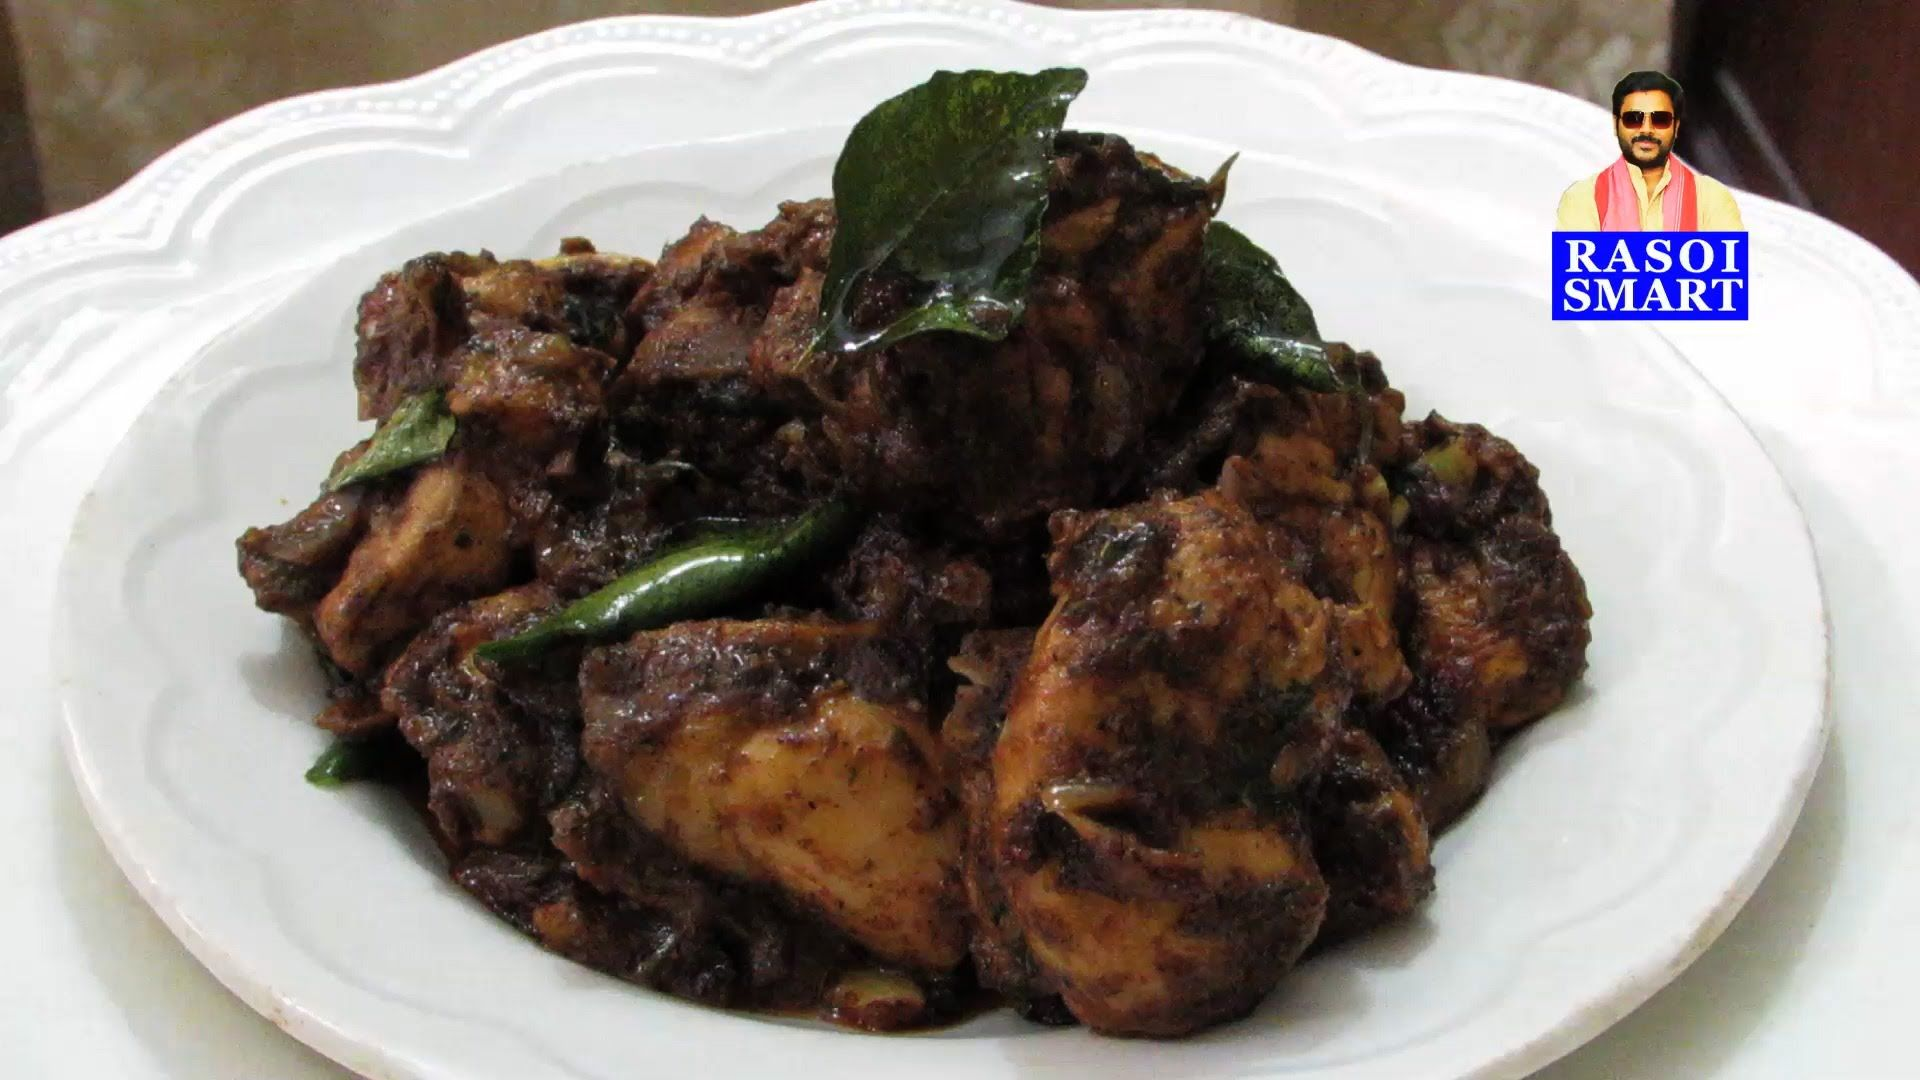 Amazing Chicken Curry Leaves Masala Fry - chunks of chicken pieces cooked with curry leaves and spices. #dinner  #lunch  #RecipeOfTheDay Check more at https://epicchickenrecipes.com/chicken-curry/chicken-curry-leaves-masala-fry-chunks-of-chicken-pieces-cooked-with-curry-leaves-and-spices-dinner-lunch-recipeoftheday/